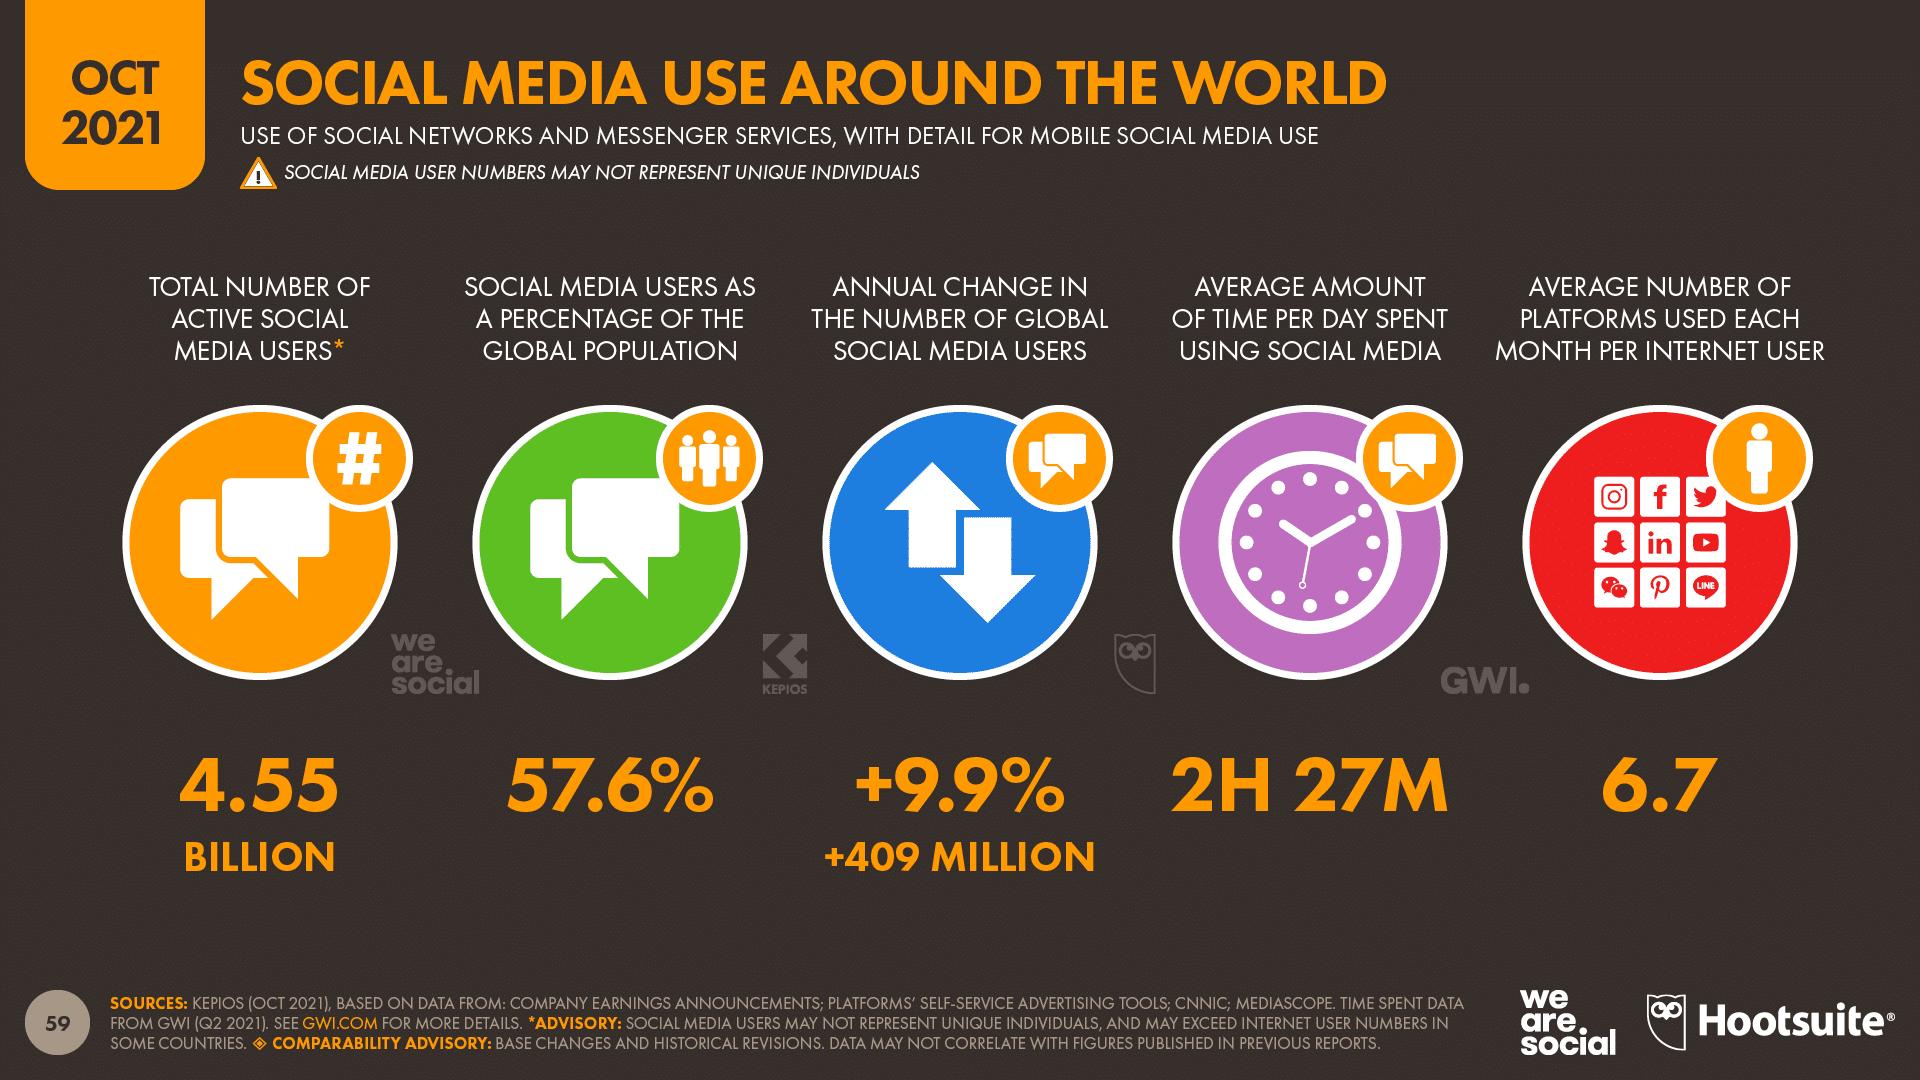 chart showing Social Media Use Around the World